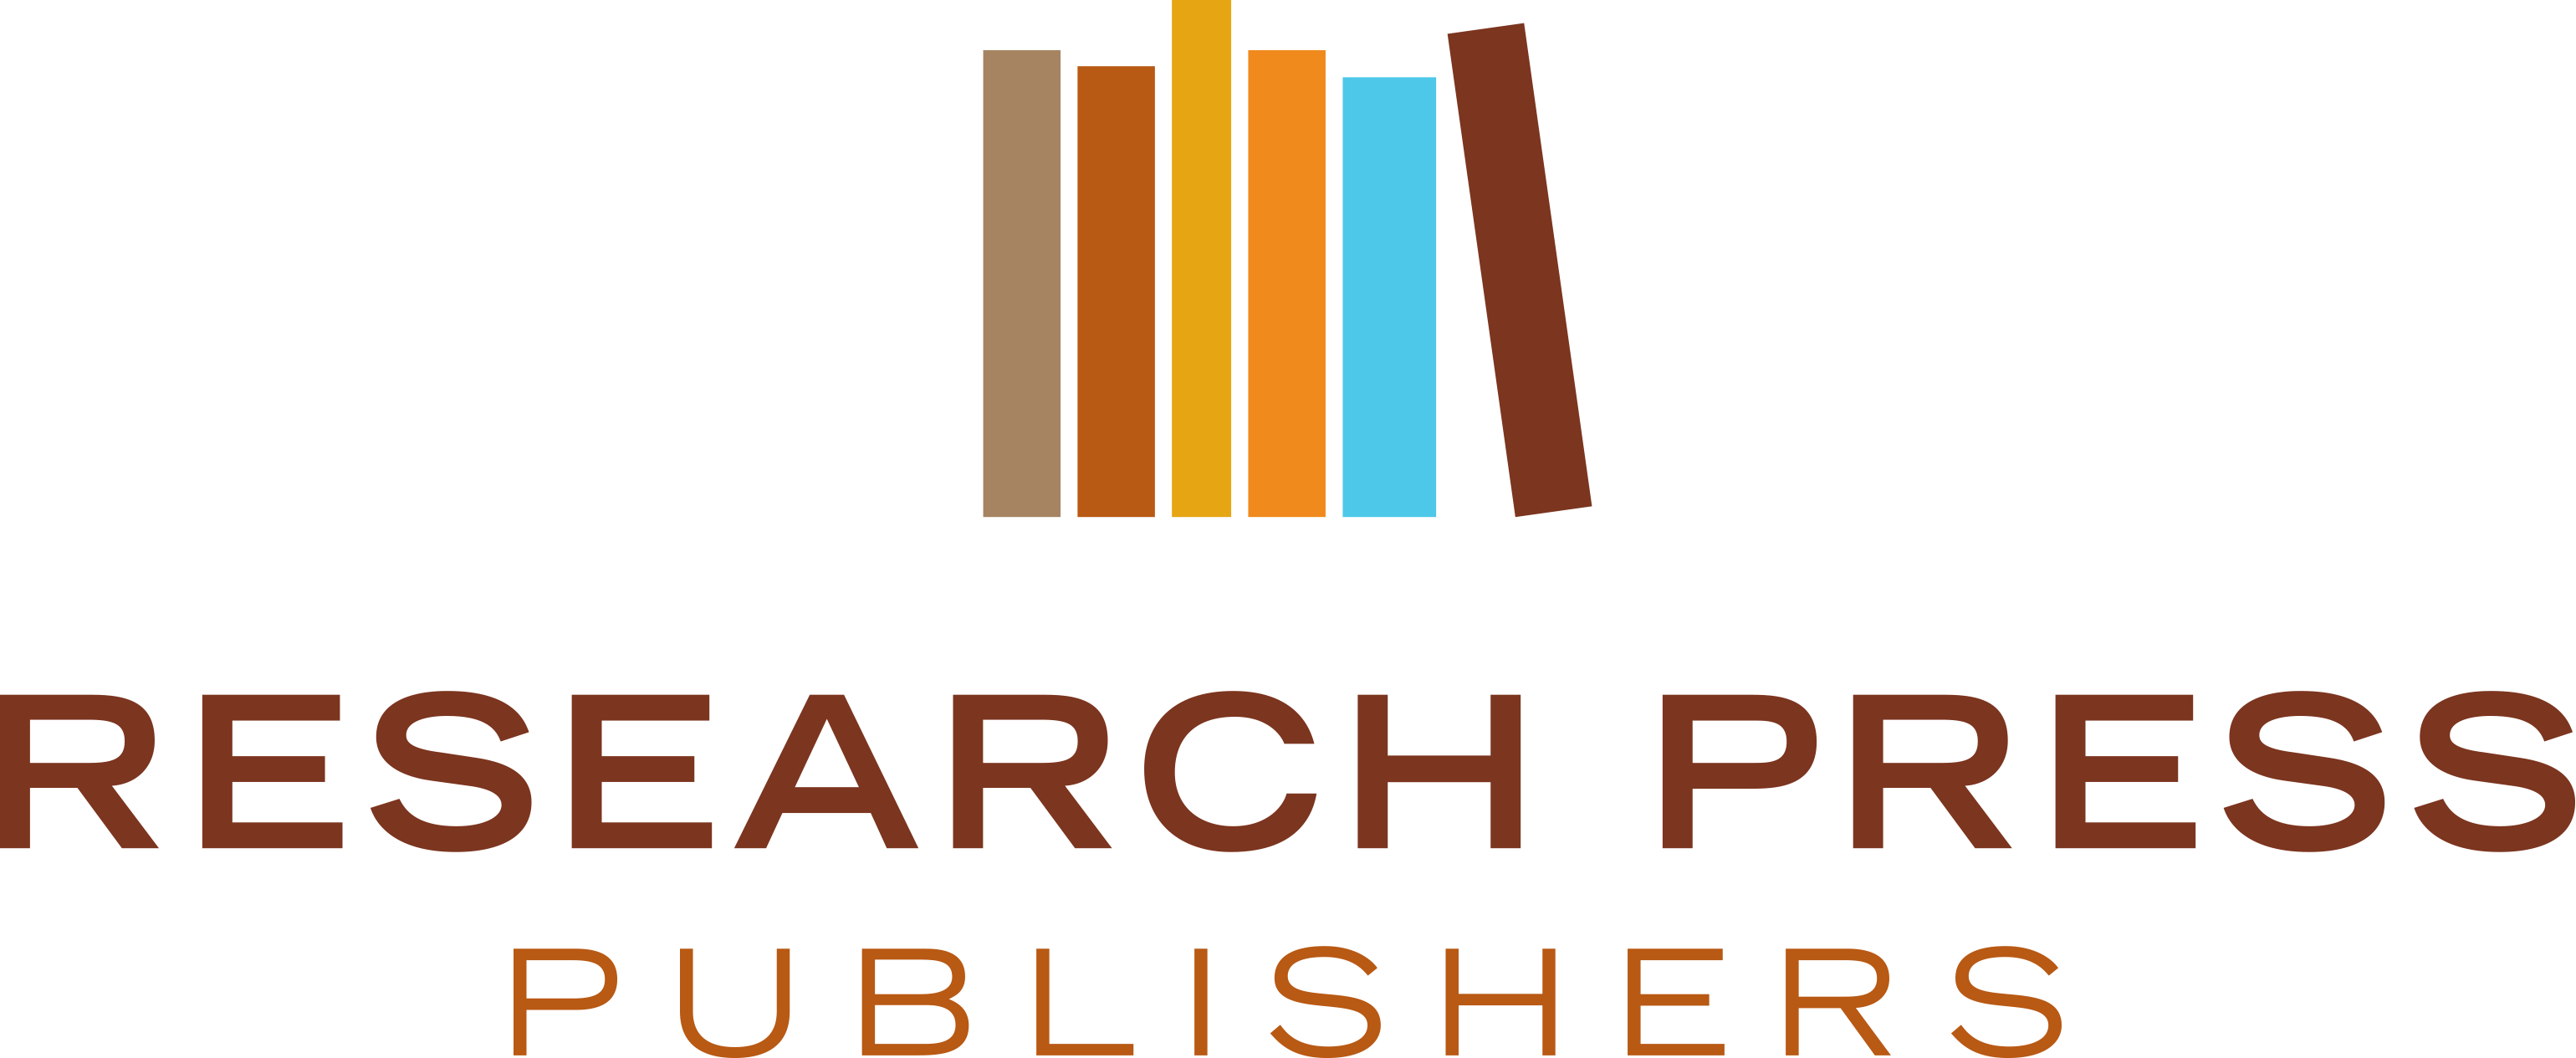 Research Press Publishers | New Branding